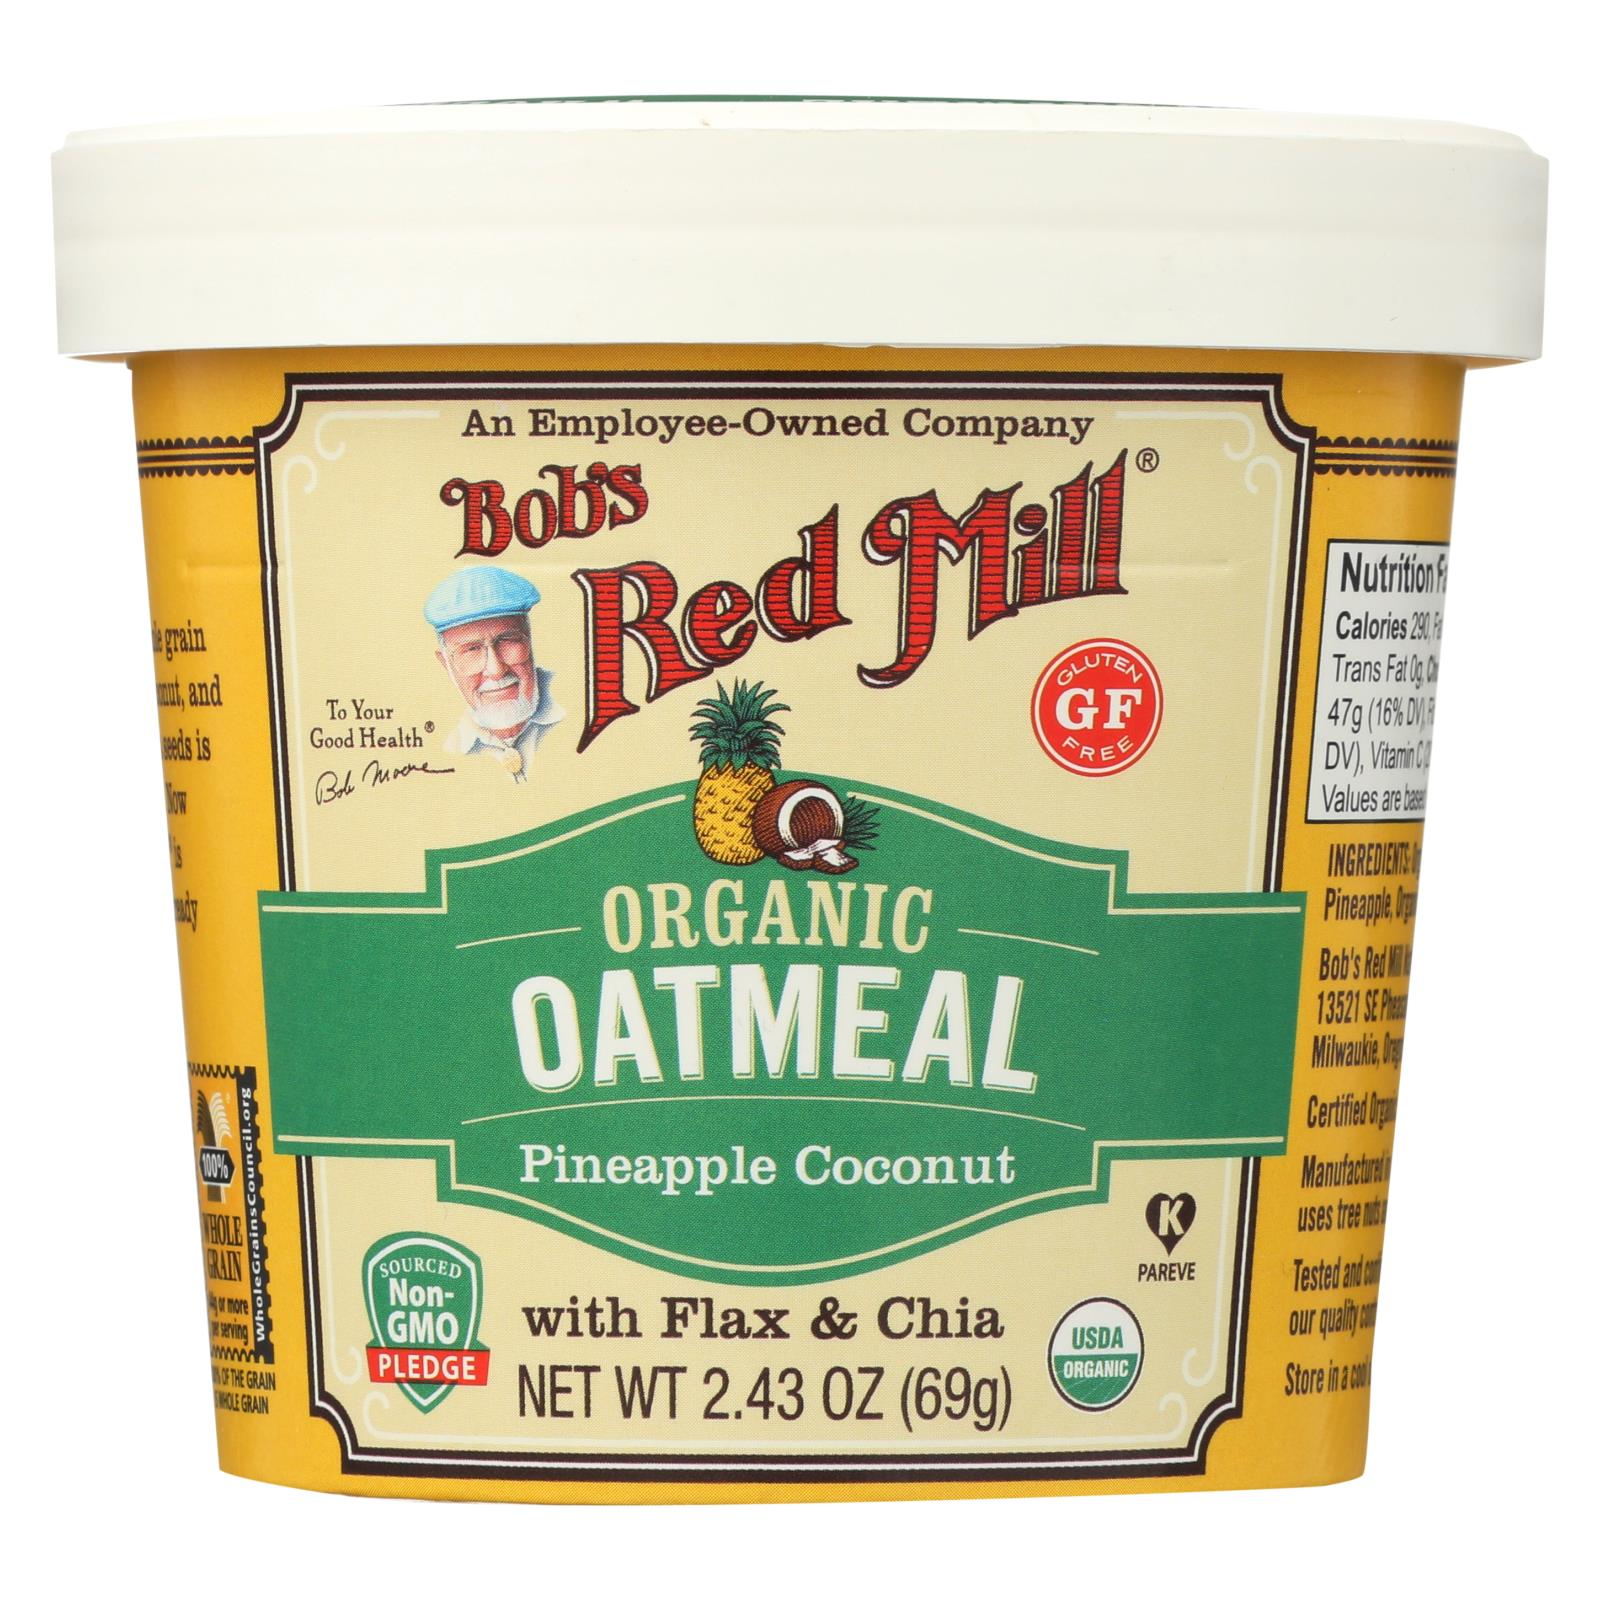 Bob's Red Mill Oatmeal Cup - Organic Pineapple Coconut - Gluten Free - Case Of 12 - 2.43 Oz HG2188233